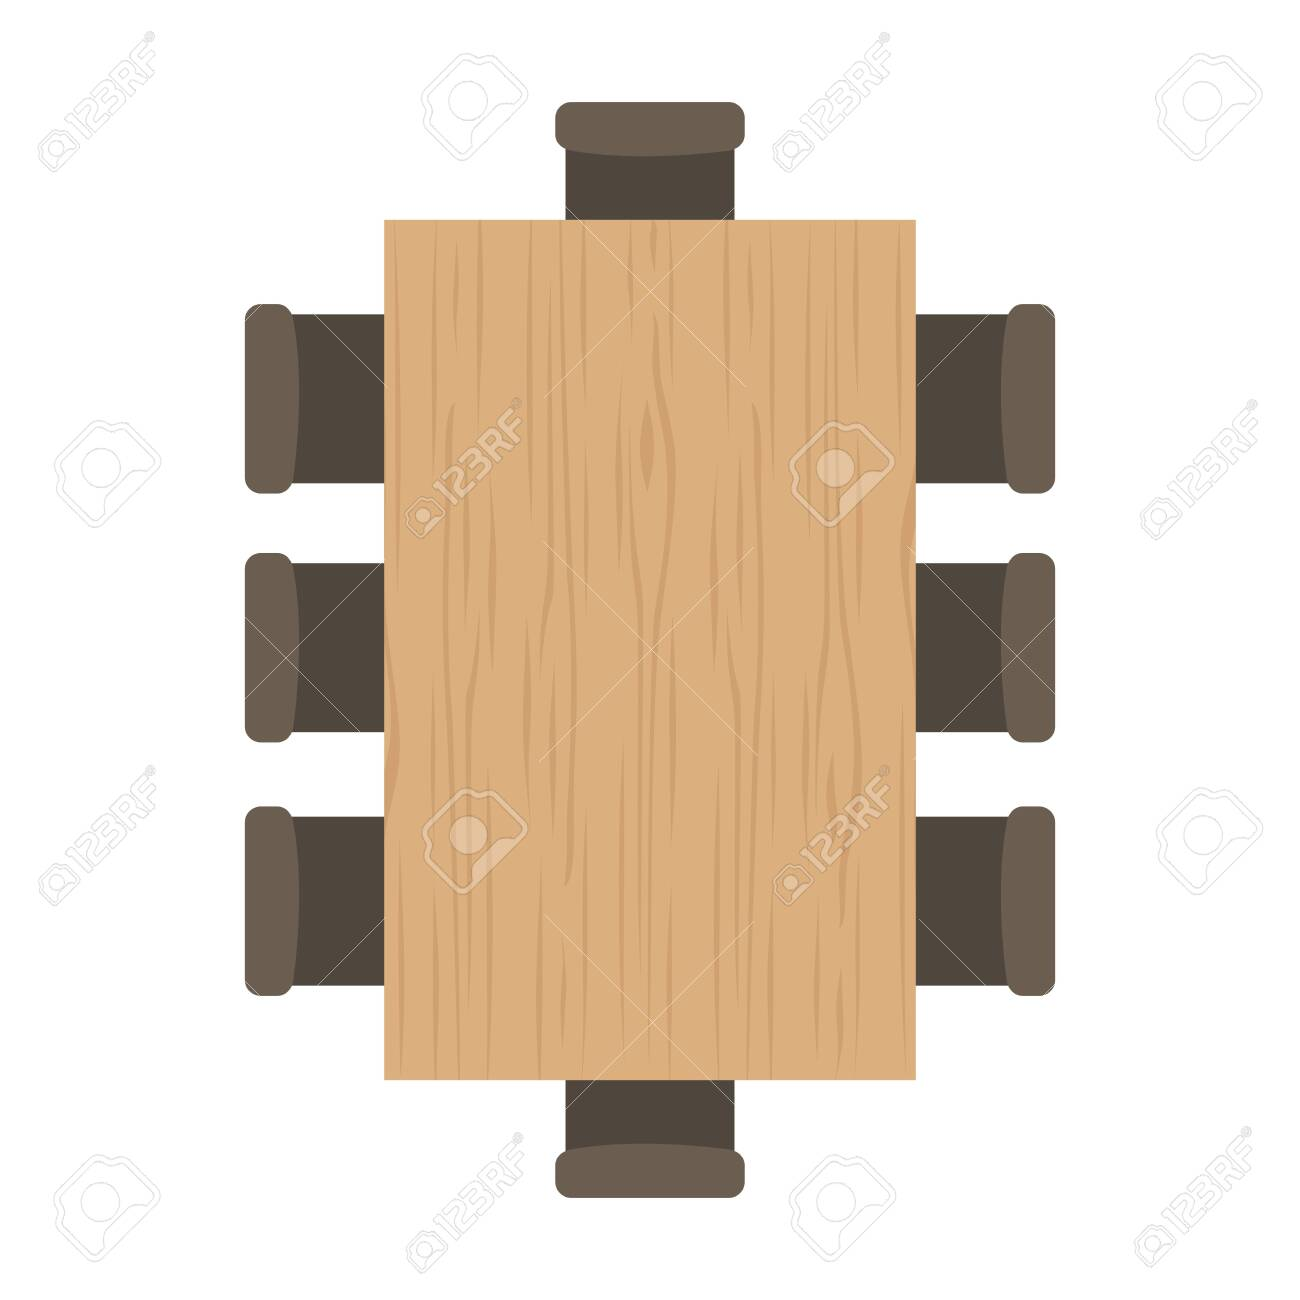 modern table top view design